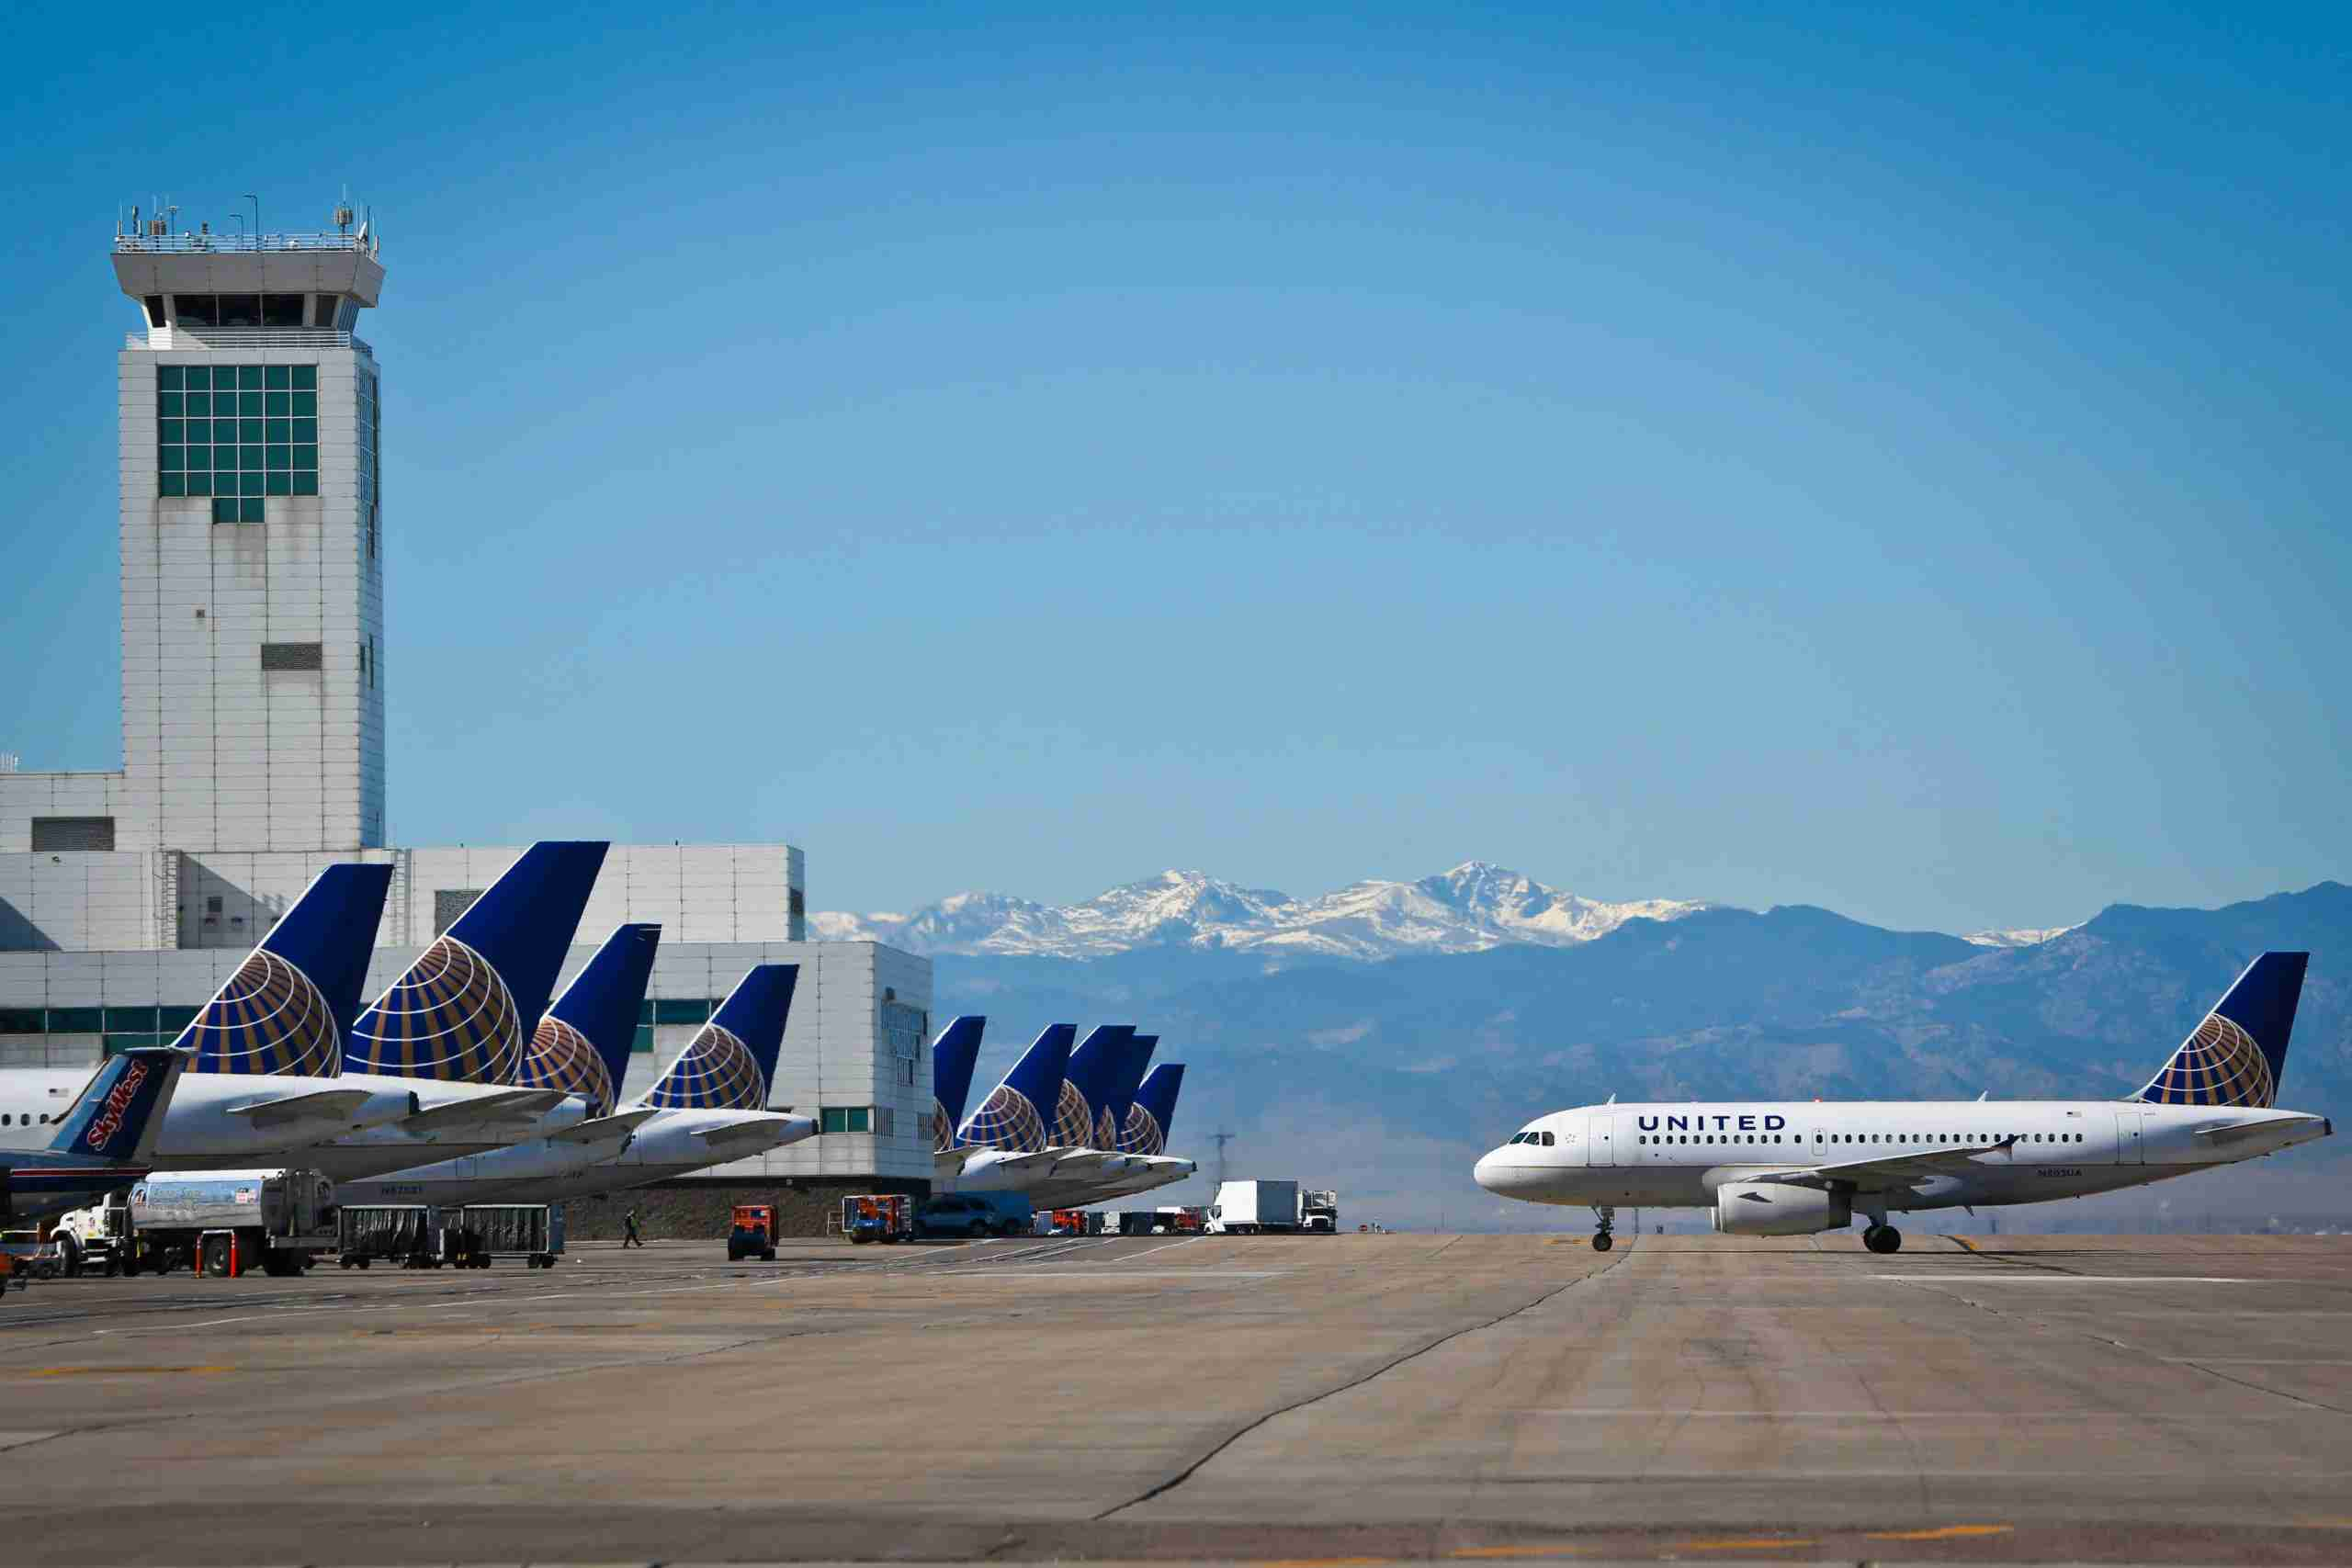 United Airlines tails at Denver International Airport. (Photo courtesy of Denver International Airport)